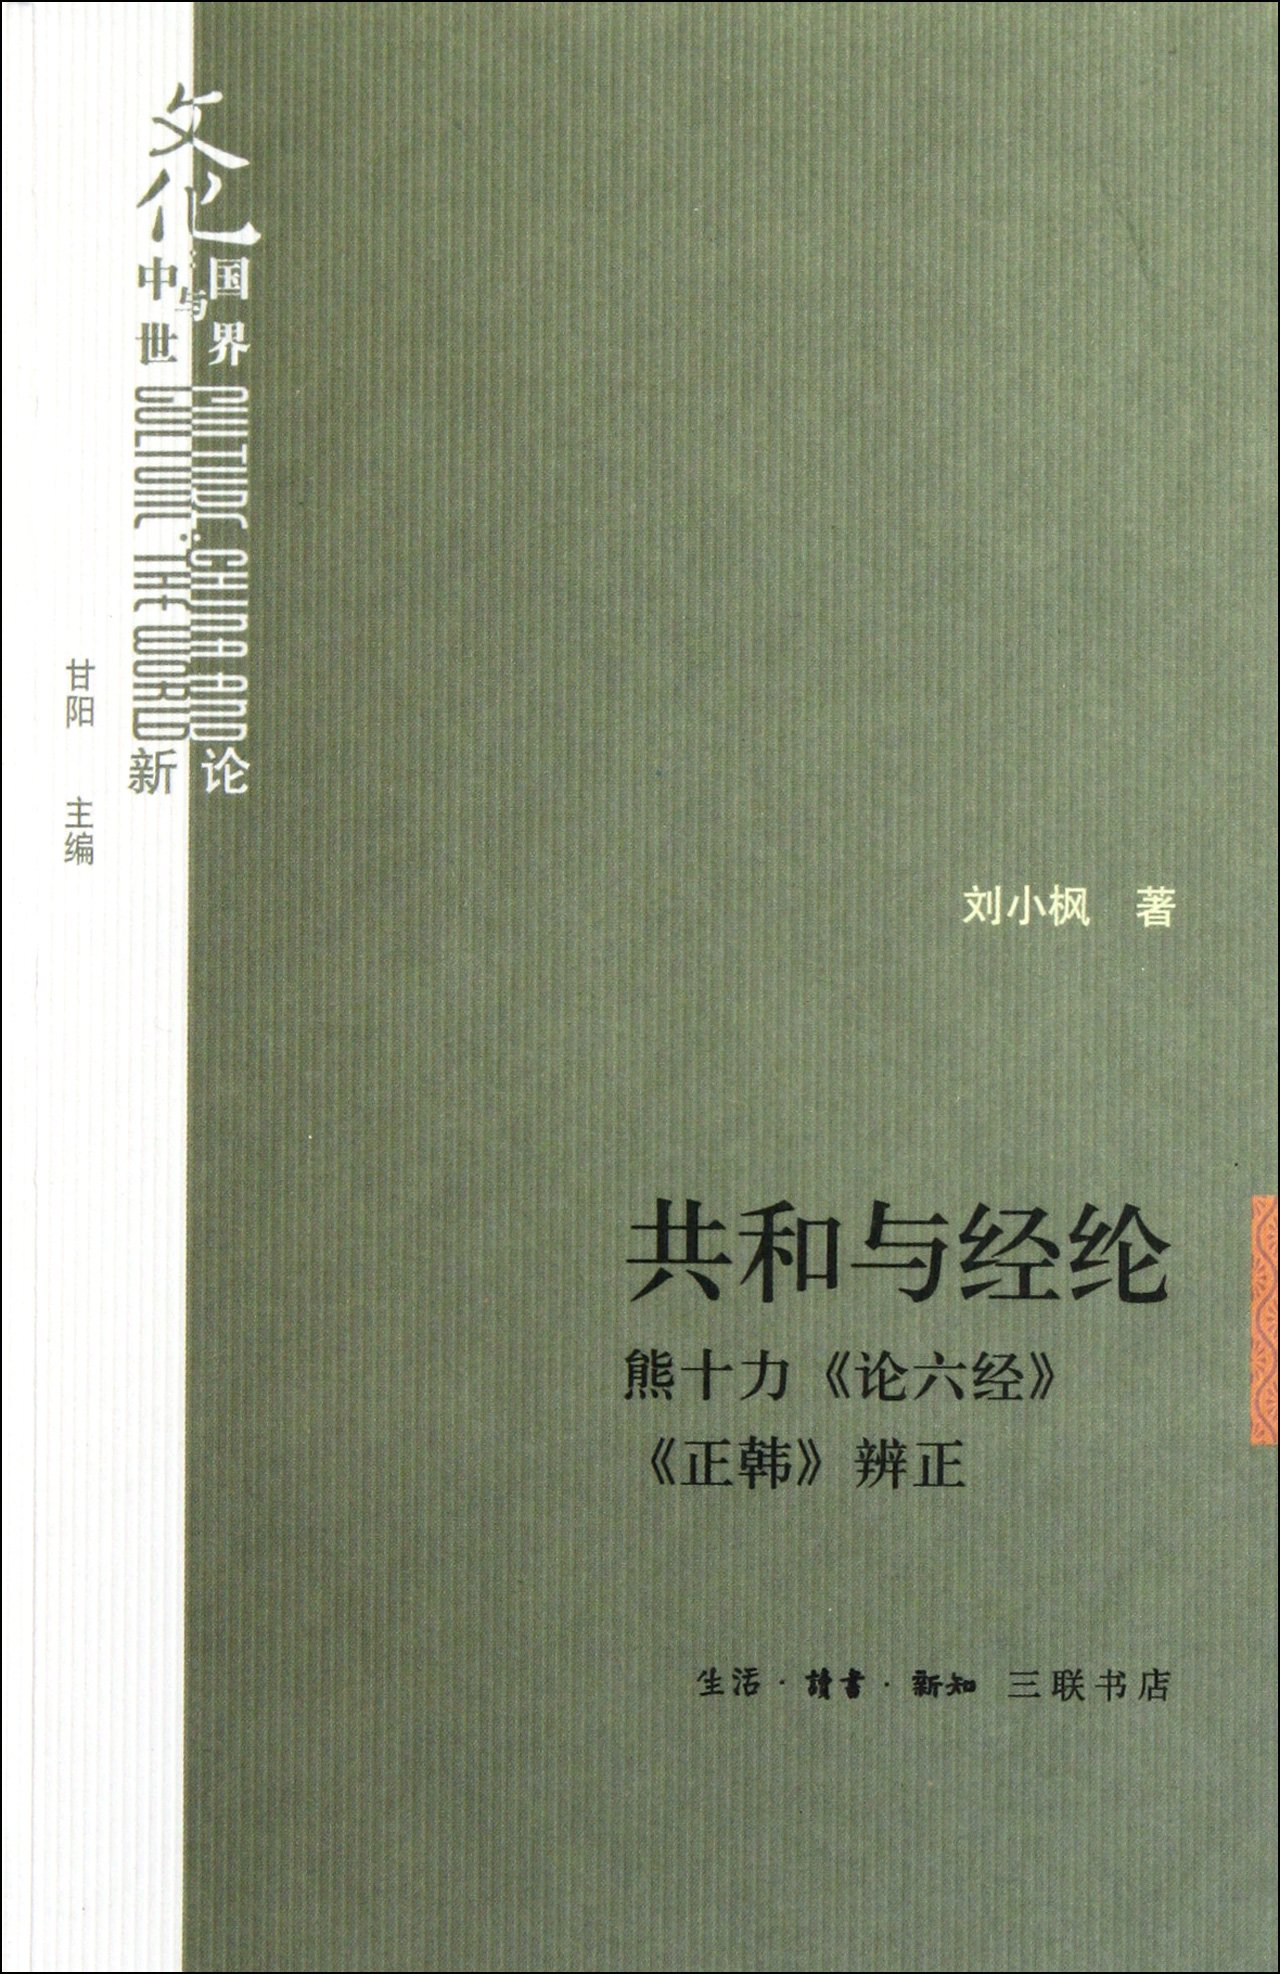 Download Republicanism and One's Ambition and Ability-Xiong Shilis Comment on Six Classics and Zhenghan (Chinese Edition) ebook